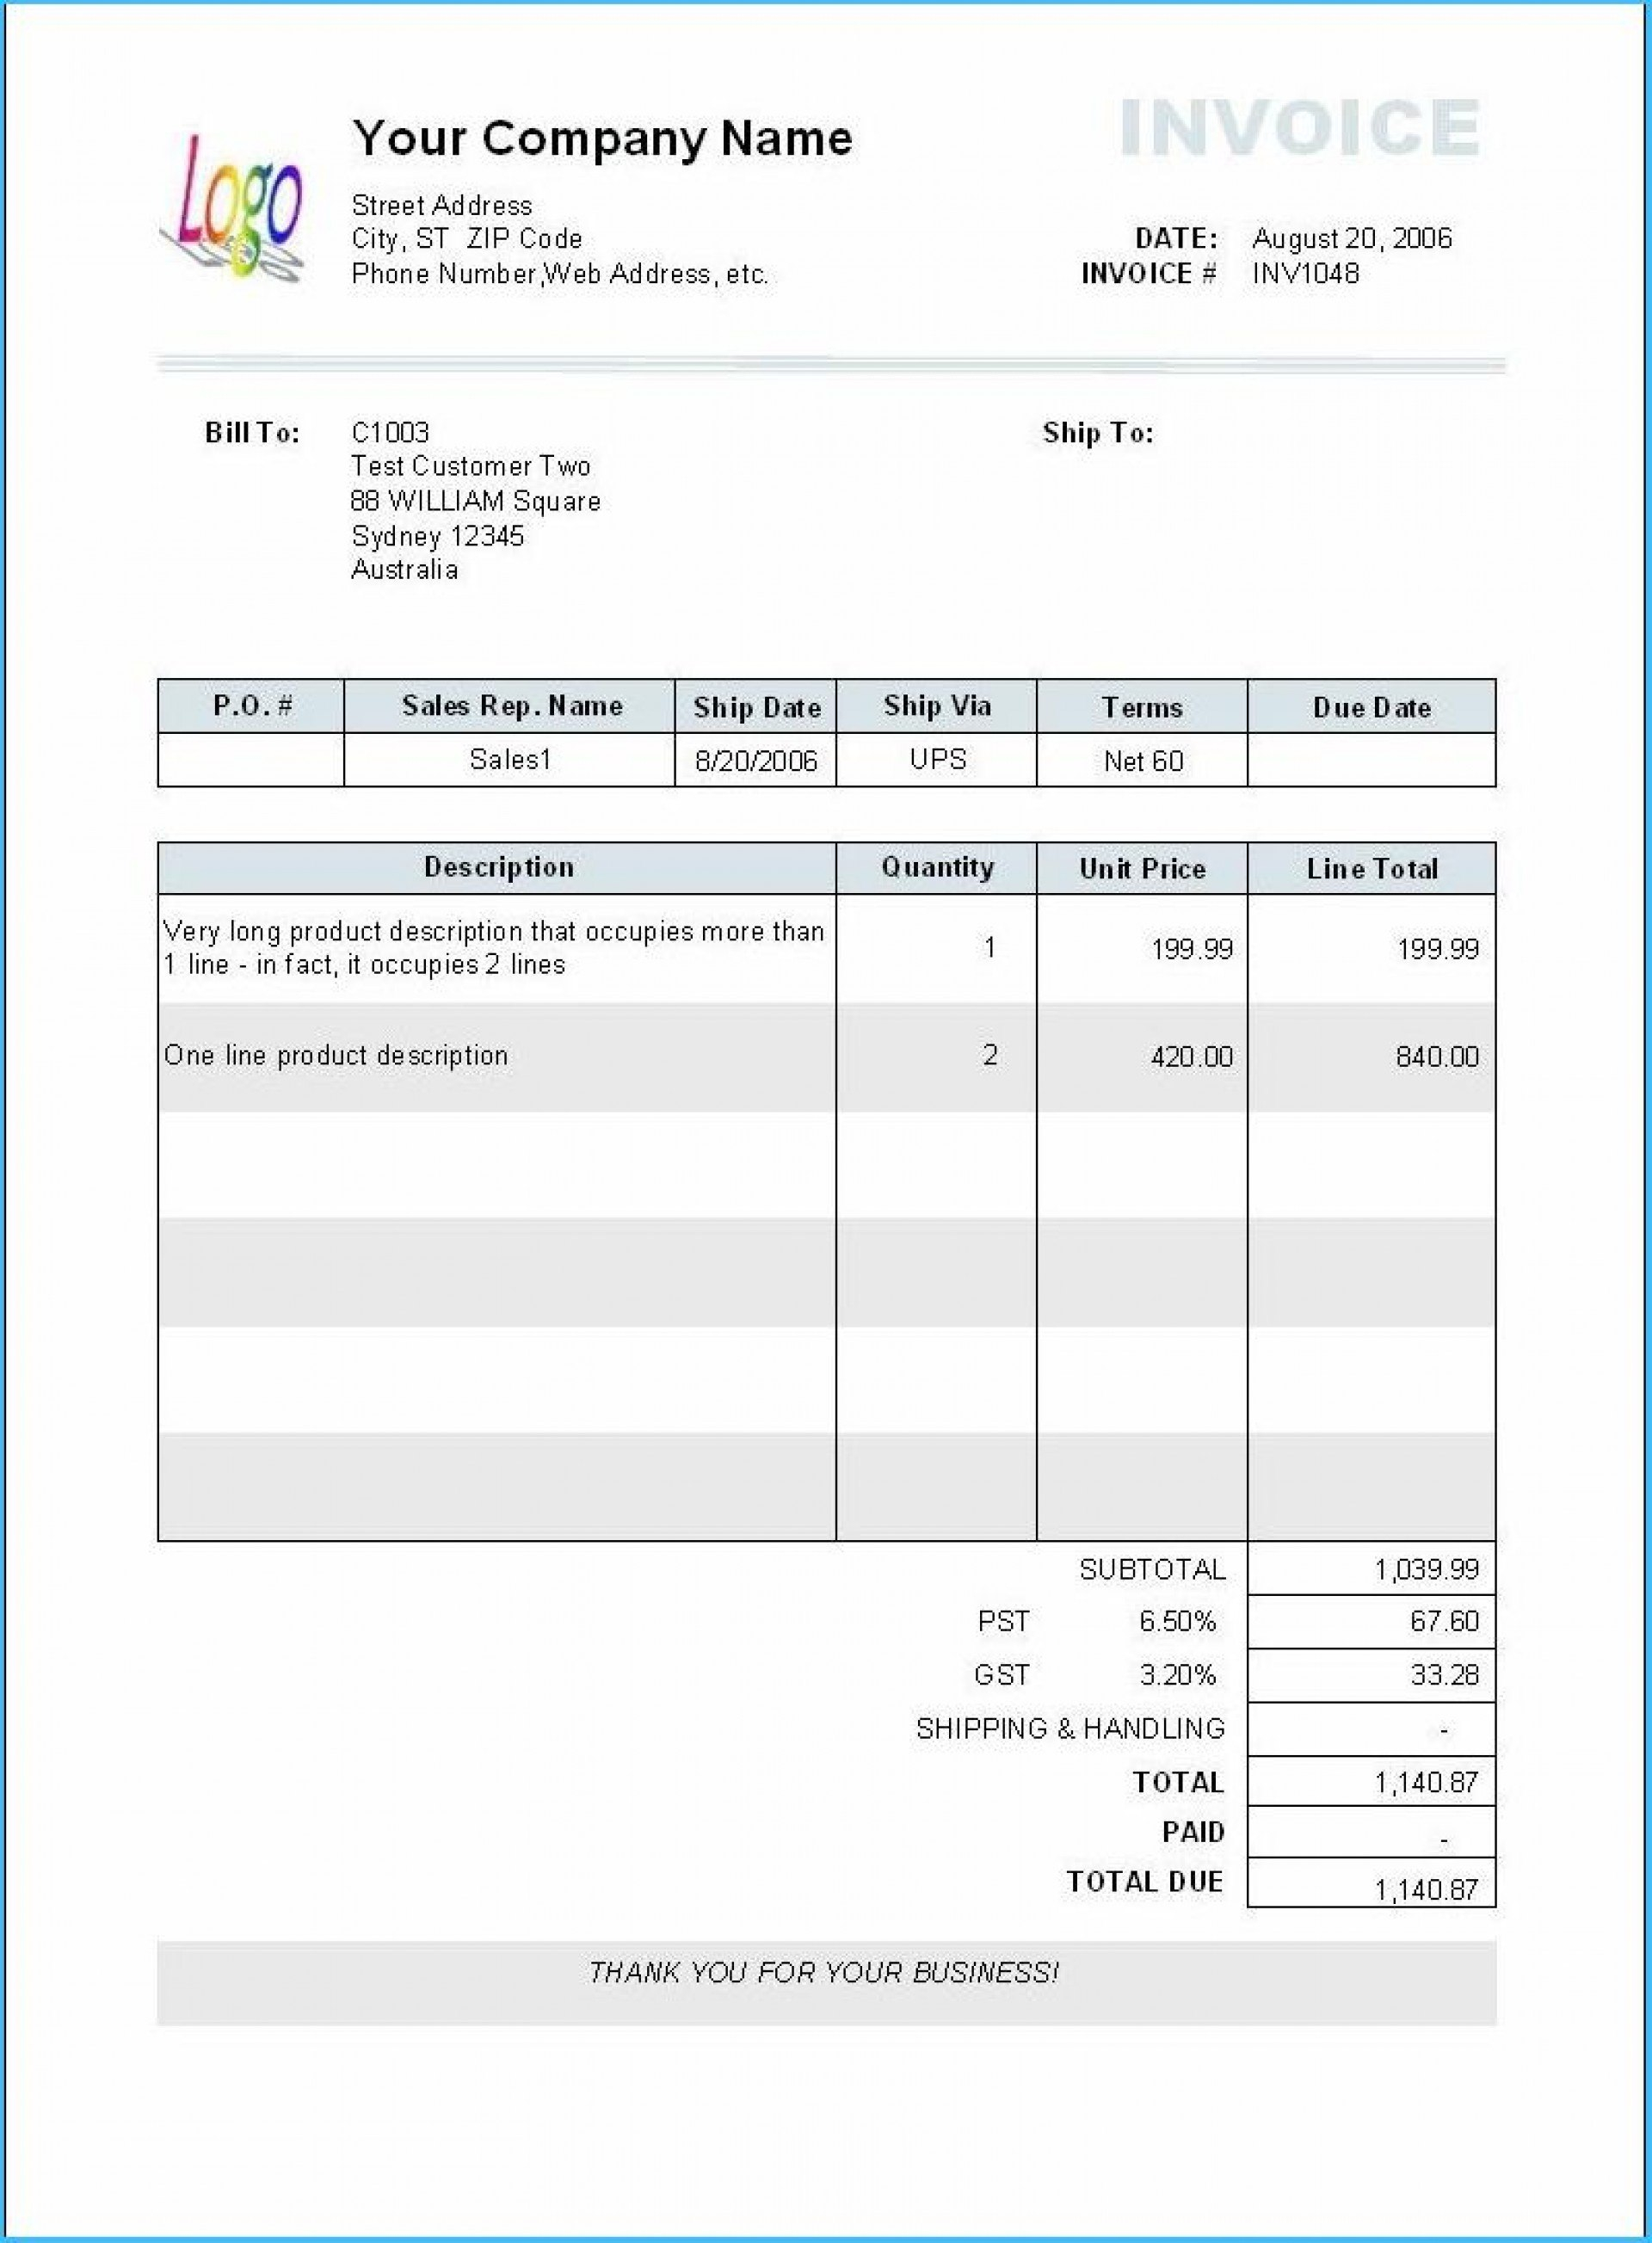 Awful Pages Invoice Templates Plan Template Rounding Ipad ~ Fanmailus Regarding Invoice Template For Pages